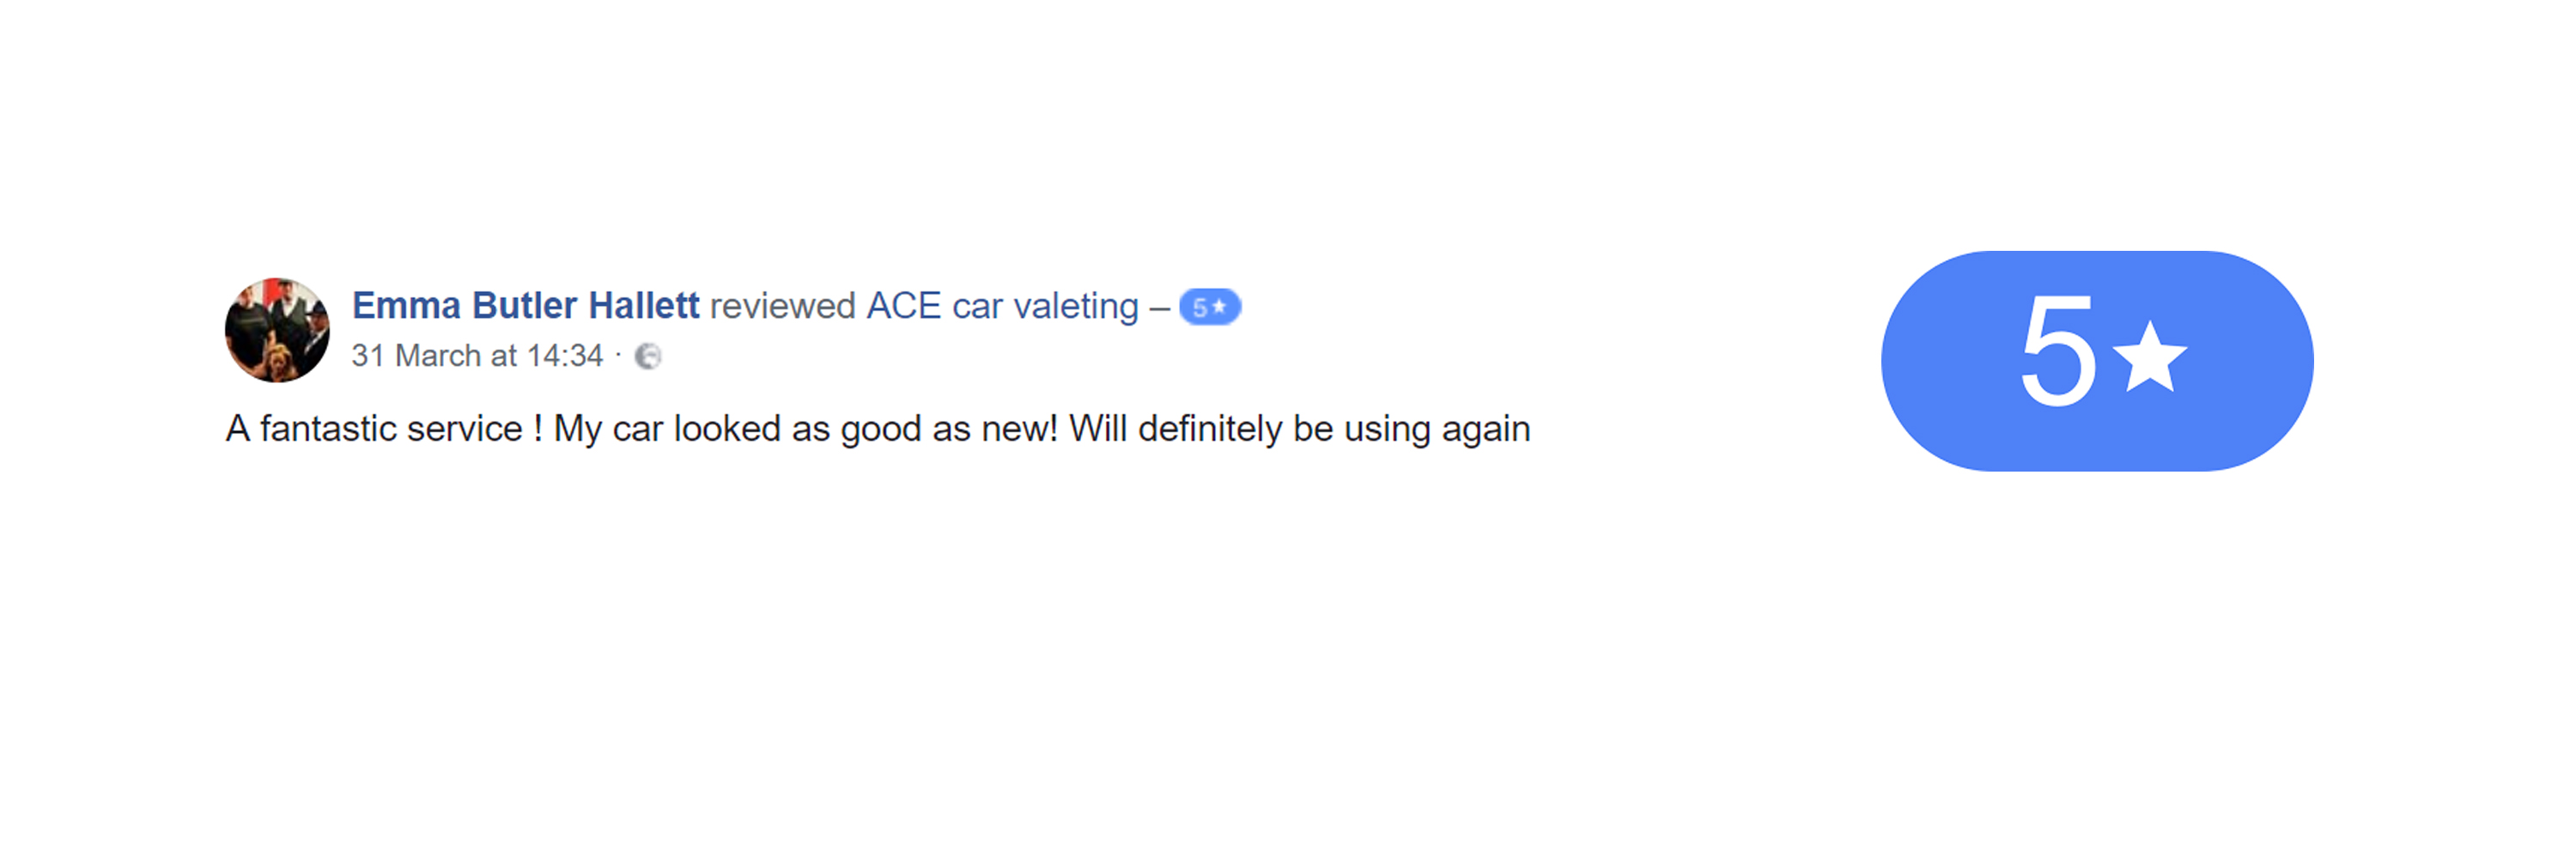 ace review_8